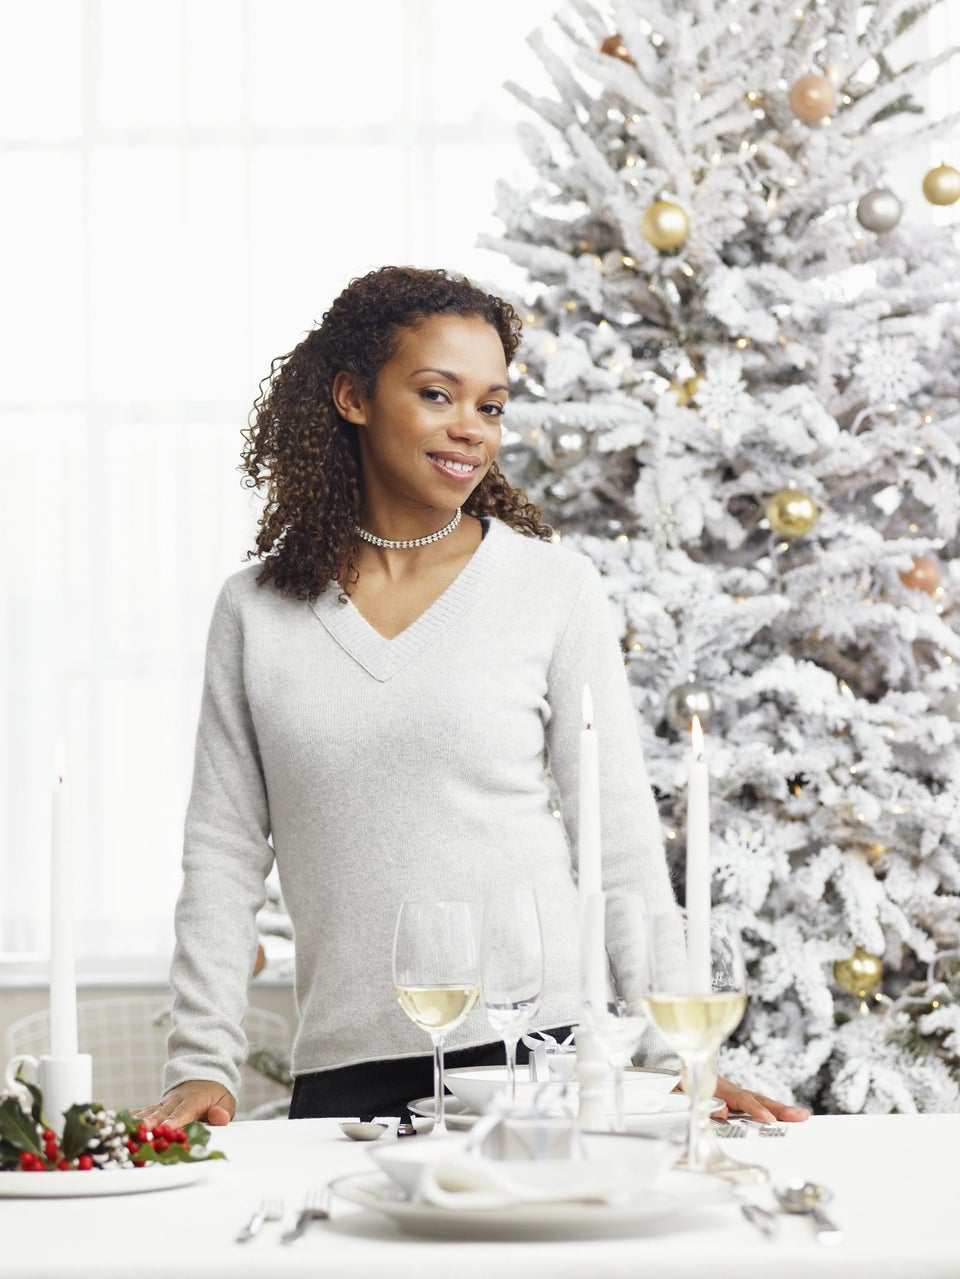 Deck the Halls, Fast: Give Your a Home a Quick Holiday Makeover